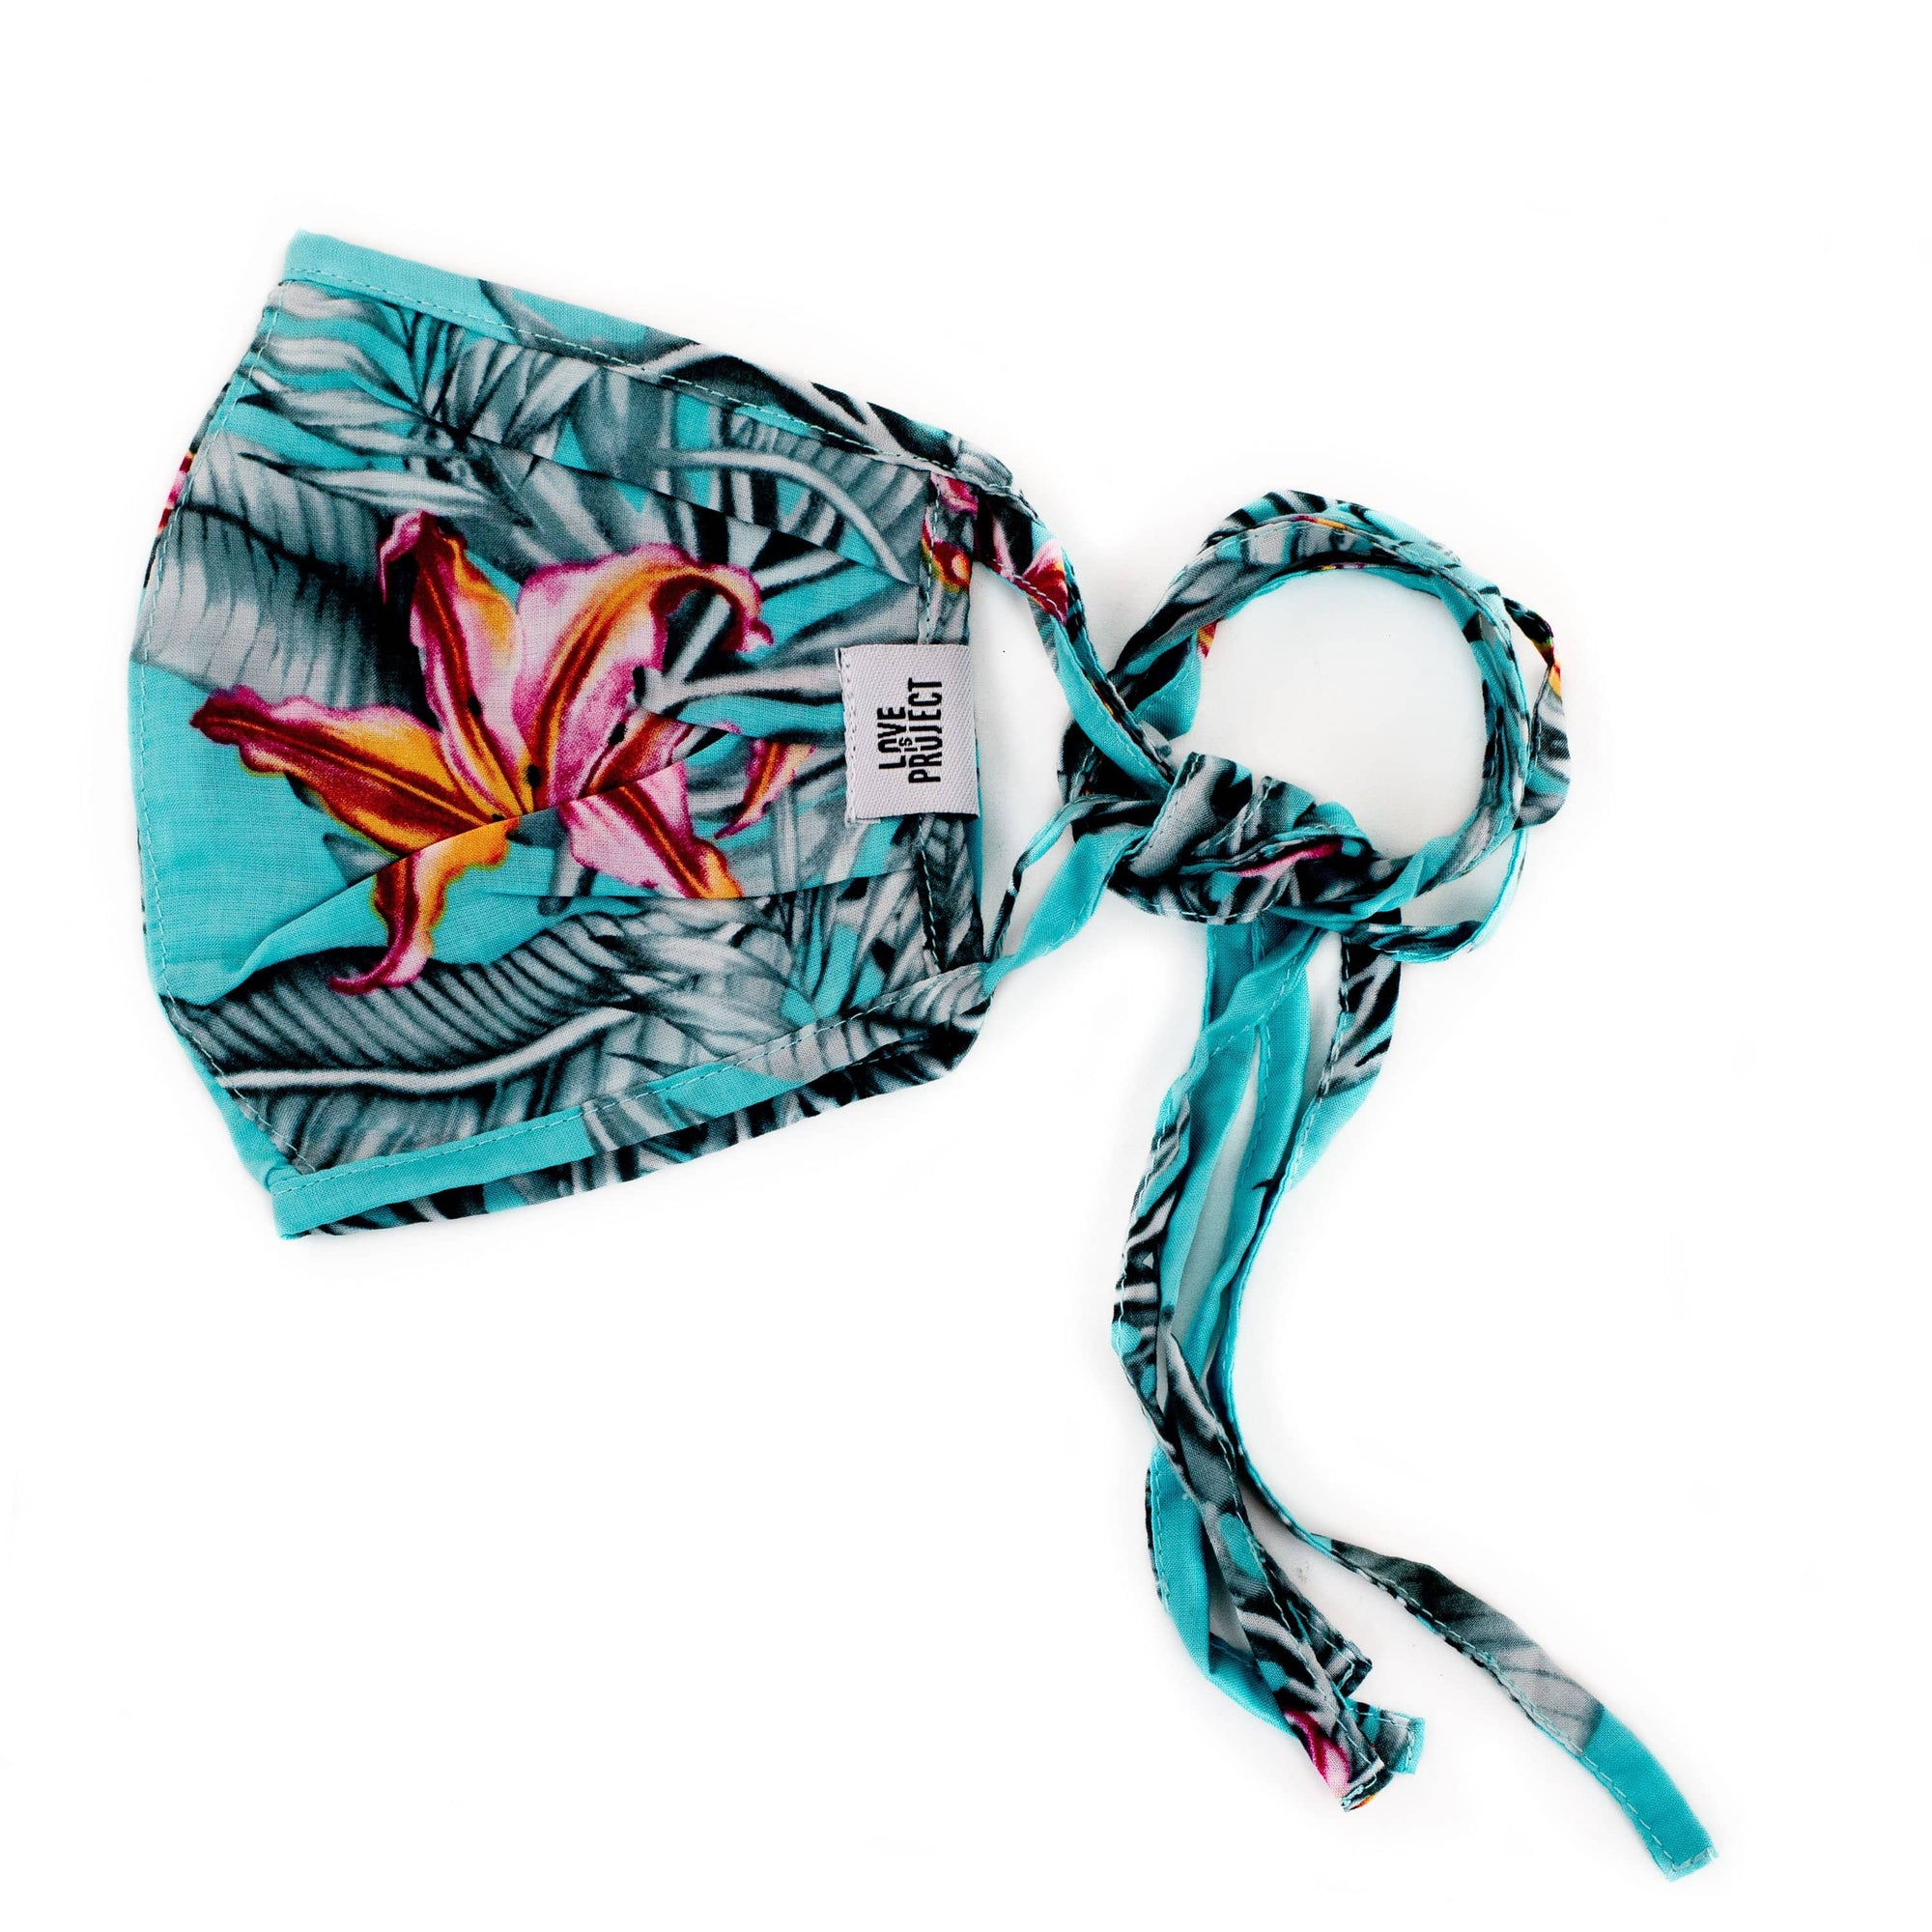 Aloha Tie Face Mask - Turquoise